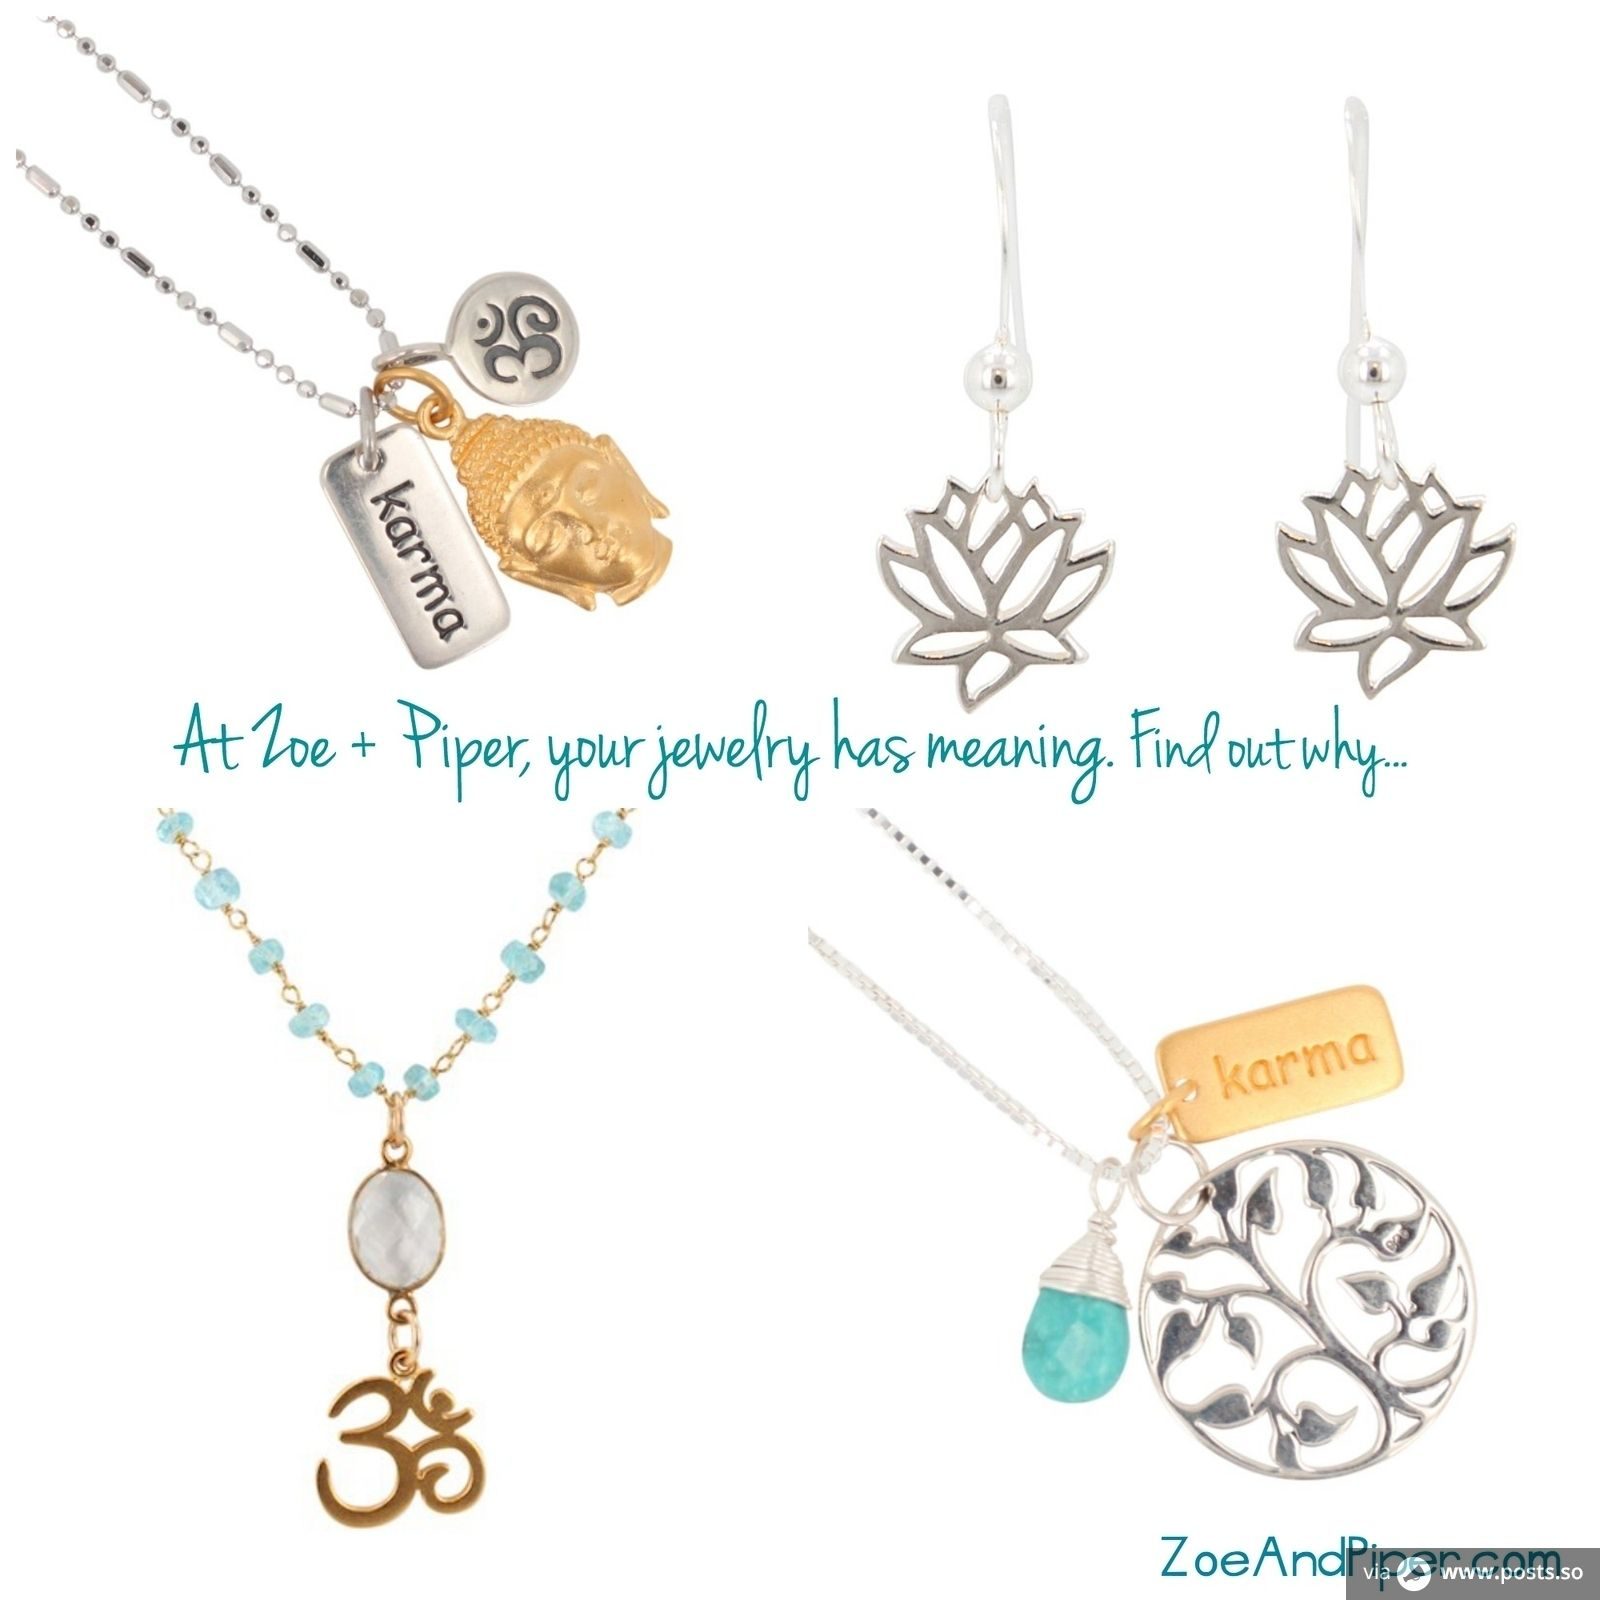 At Zoe and Piper your jewelry has meaning. Find out why http://bit.ly/1rPOvIT